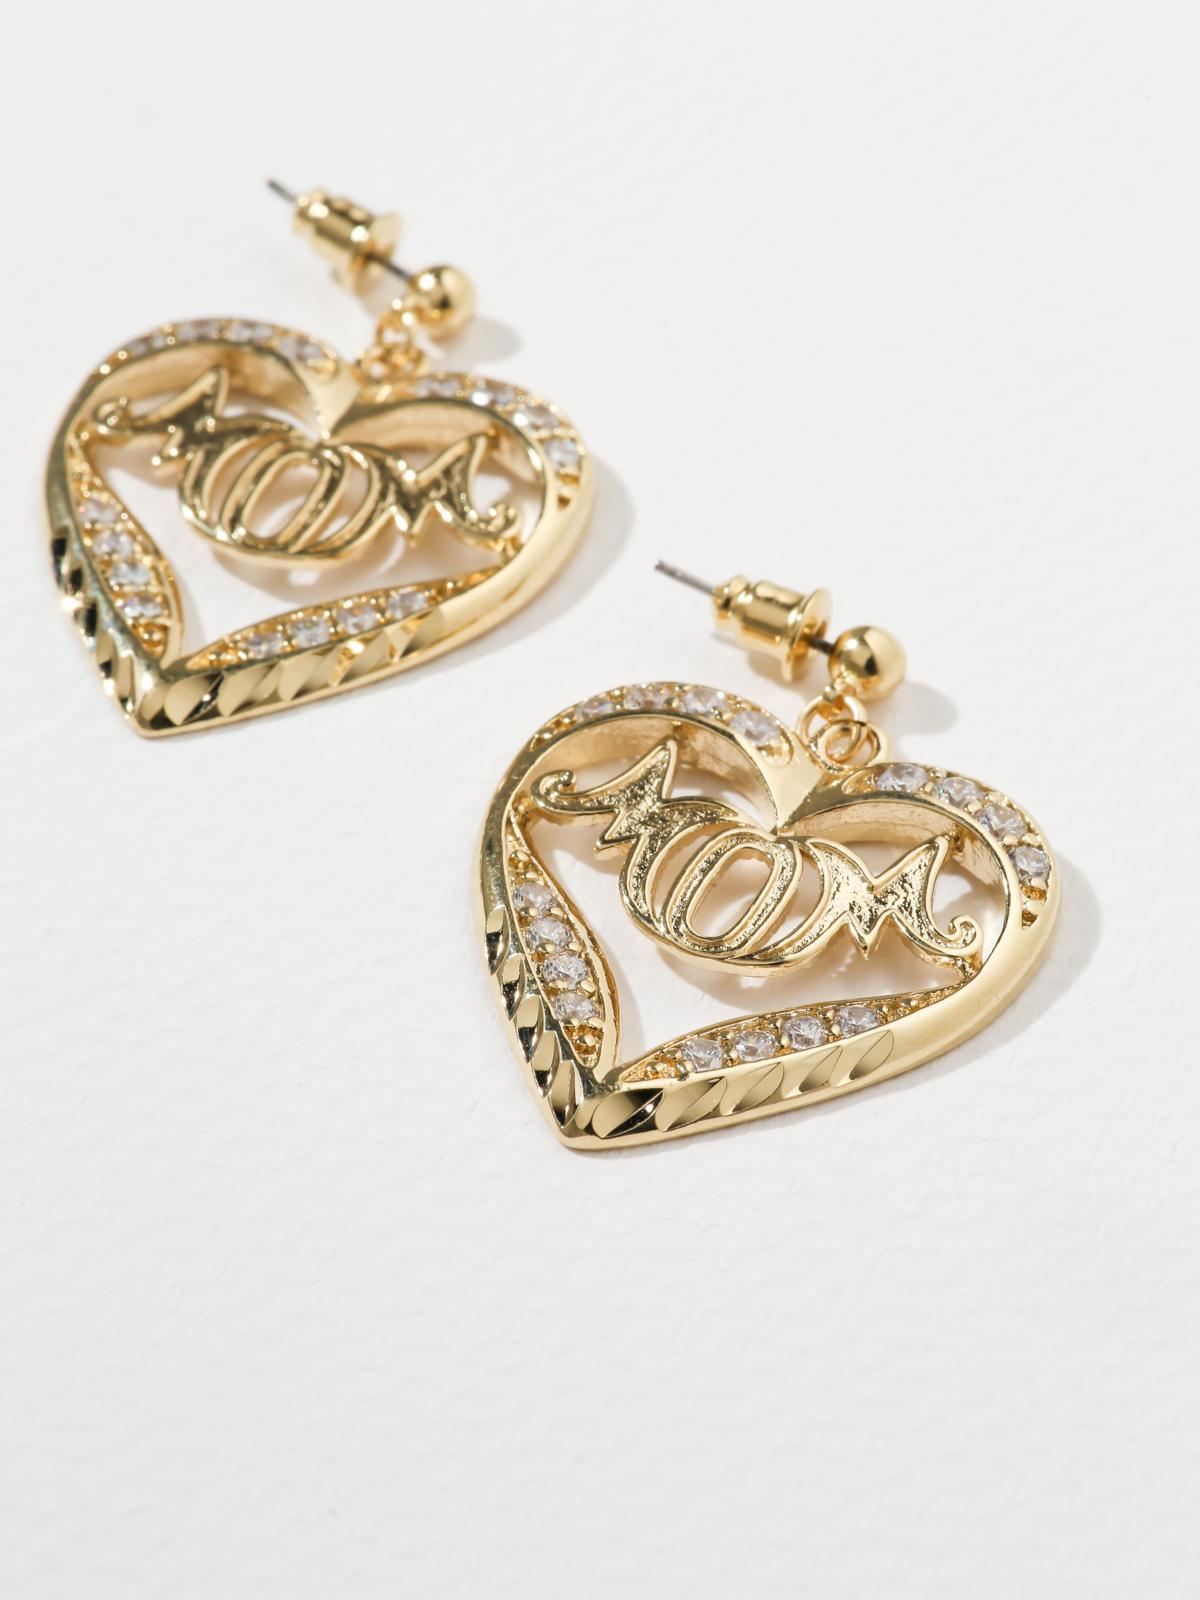 The Mother Lover Earrings